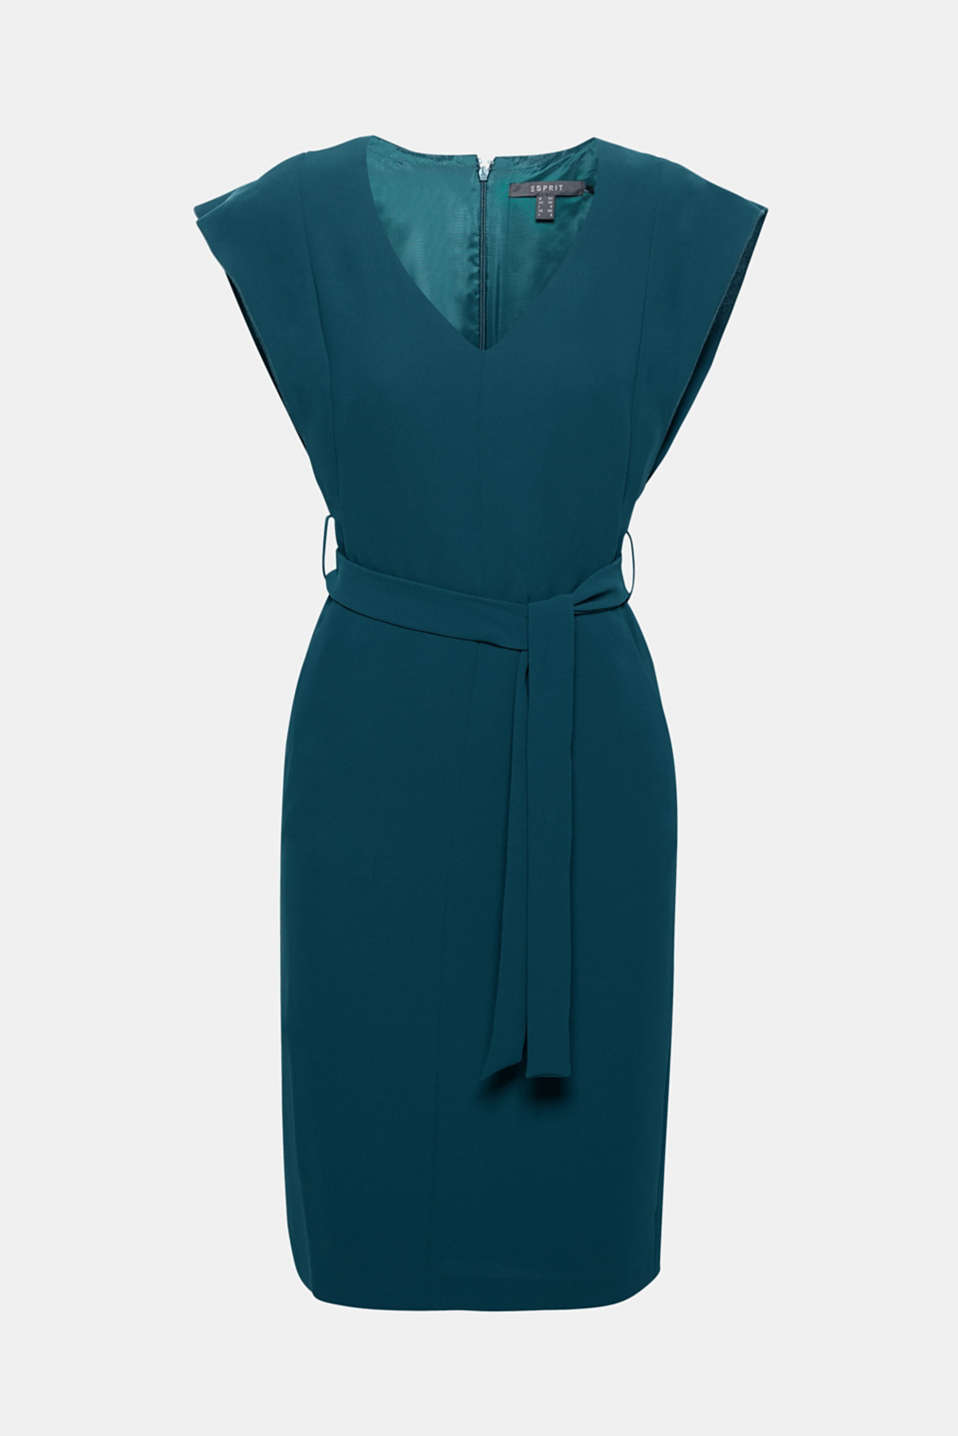 Pretty details add accents: subtle cap sleeves and a wide tie-around belt give this fitted dress in flowing material its feminine look!